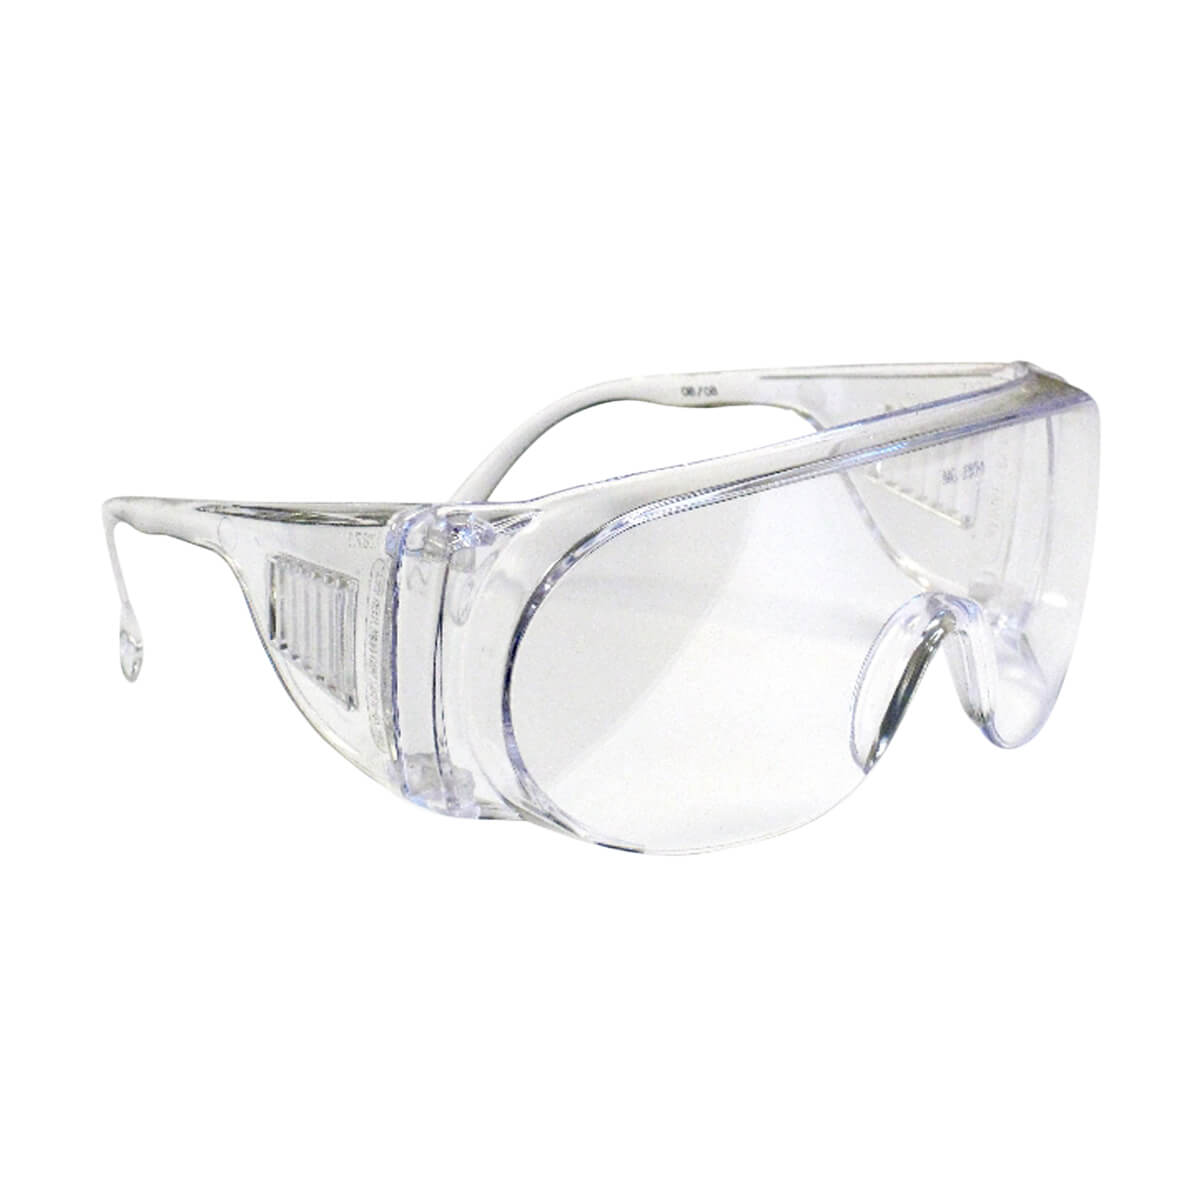 WorkHorse® Visitor Safety Glasses